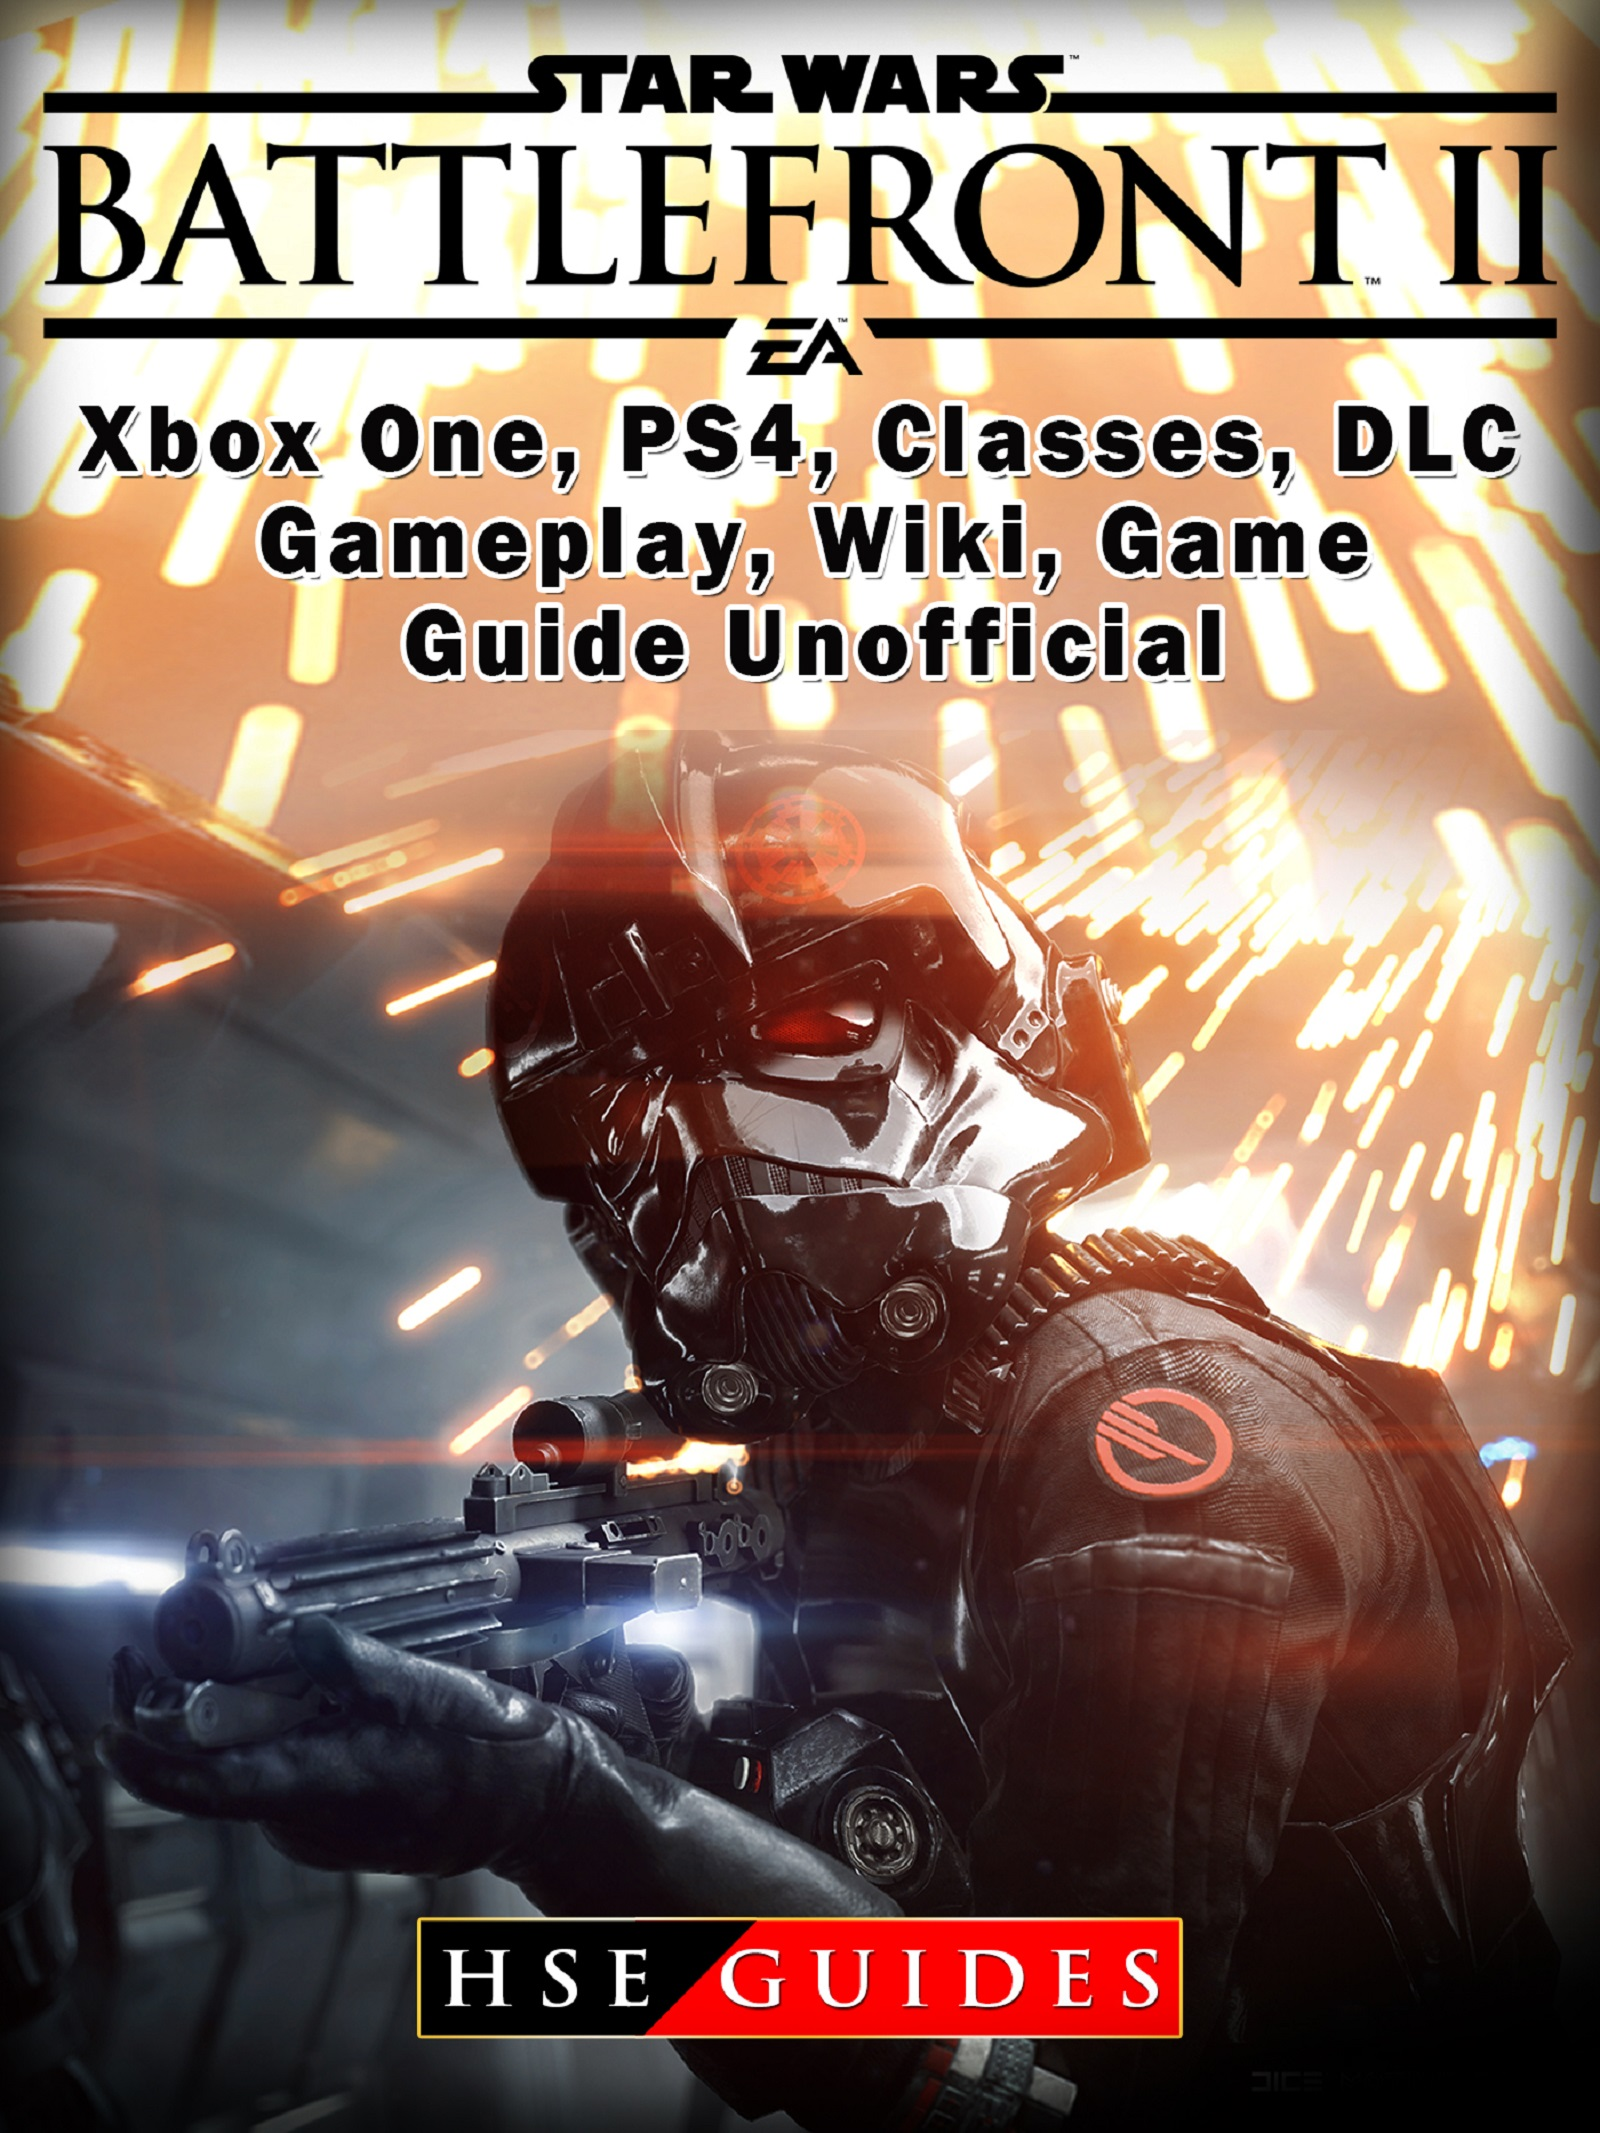 Star Wars Battlefront 2 Xbox One, PS4, Campaign, Gameplay, DLC, Game Guide Unofficial By Hse Guides